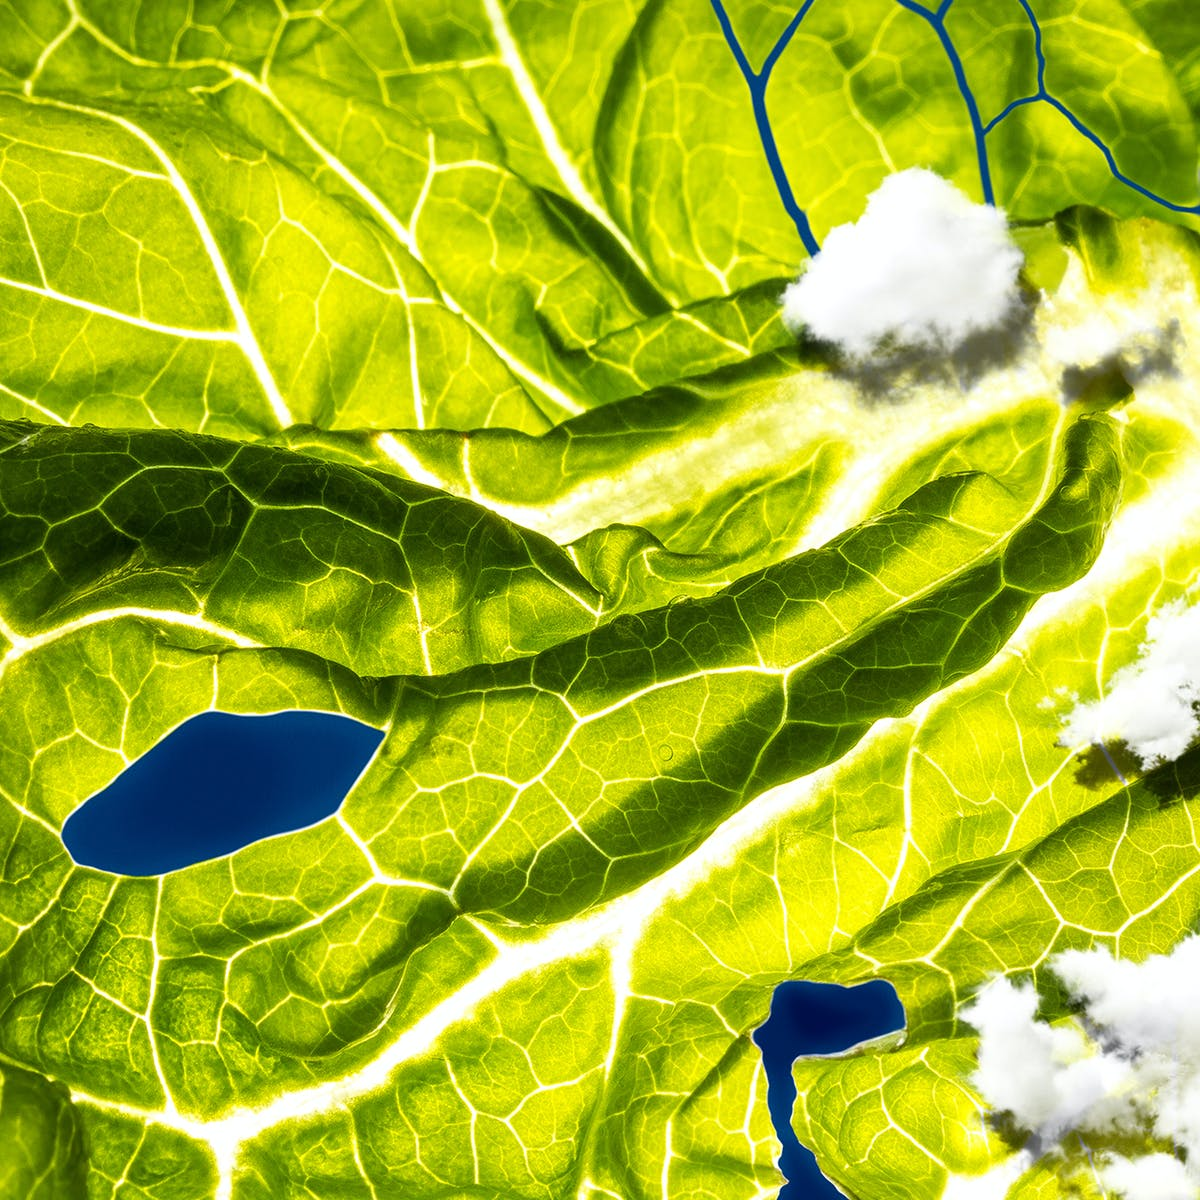 E. Coli Romaine Lettuce Outbreak Continues to Mystify Scientists